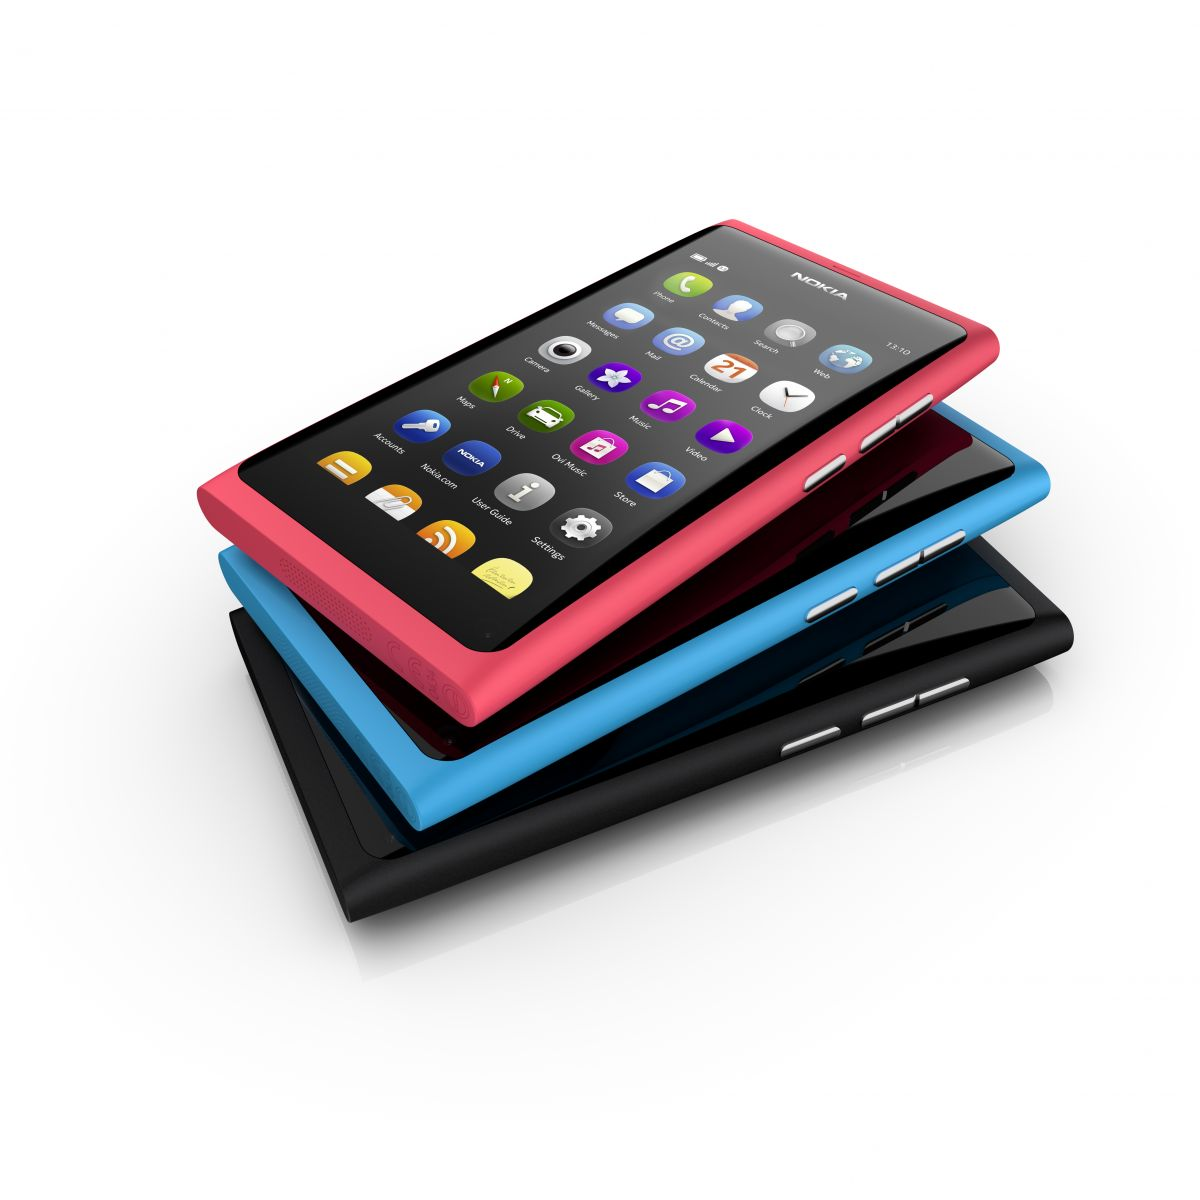 , Nokia N9 is Now Up for Pre-order in the Philippines at Smart, Gadget Pilipinas